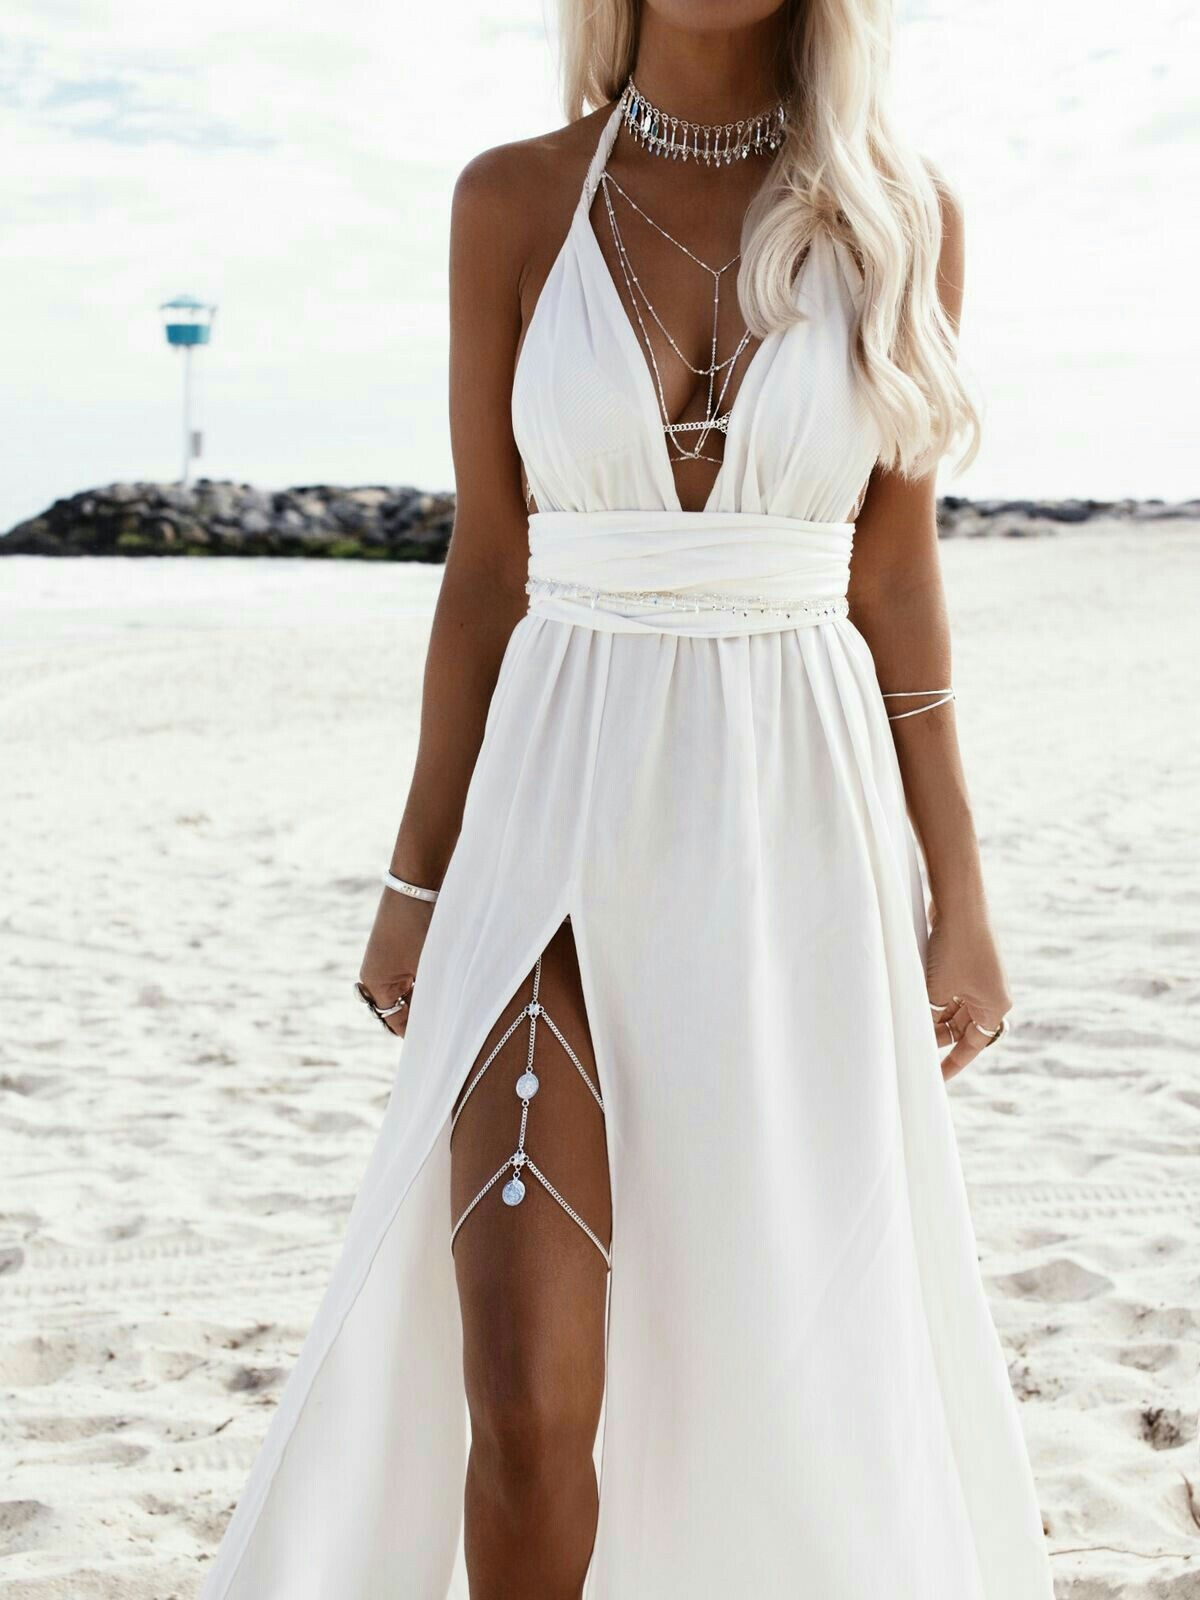 I Think This Is Beautiful For A Beach Wedding Beach White Dress Honeymoon Outfits Beautiful Dresses [ 1600 x 1200 Pixel ]